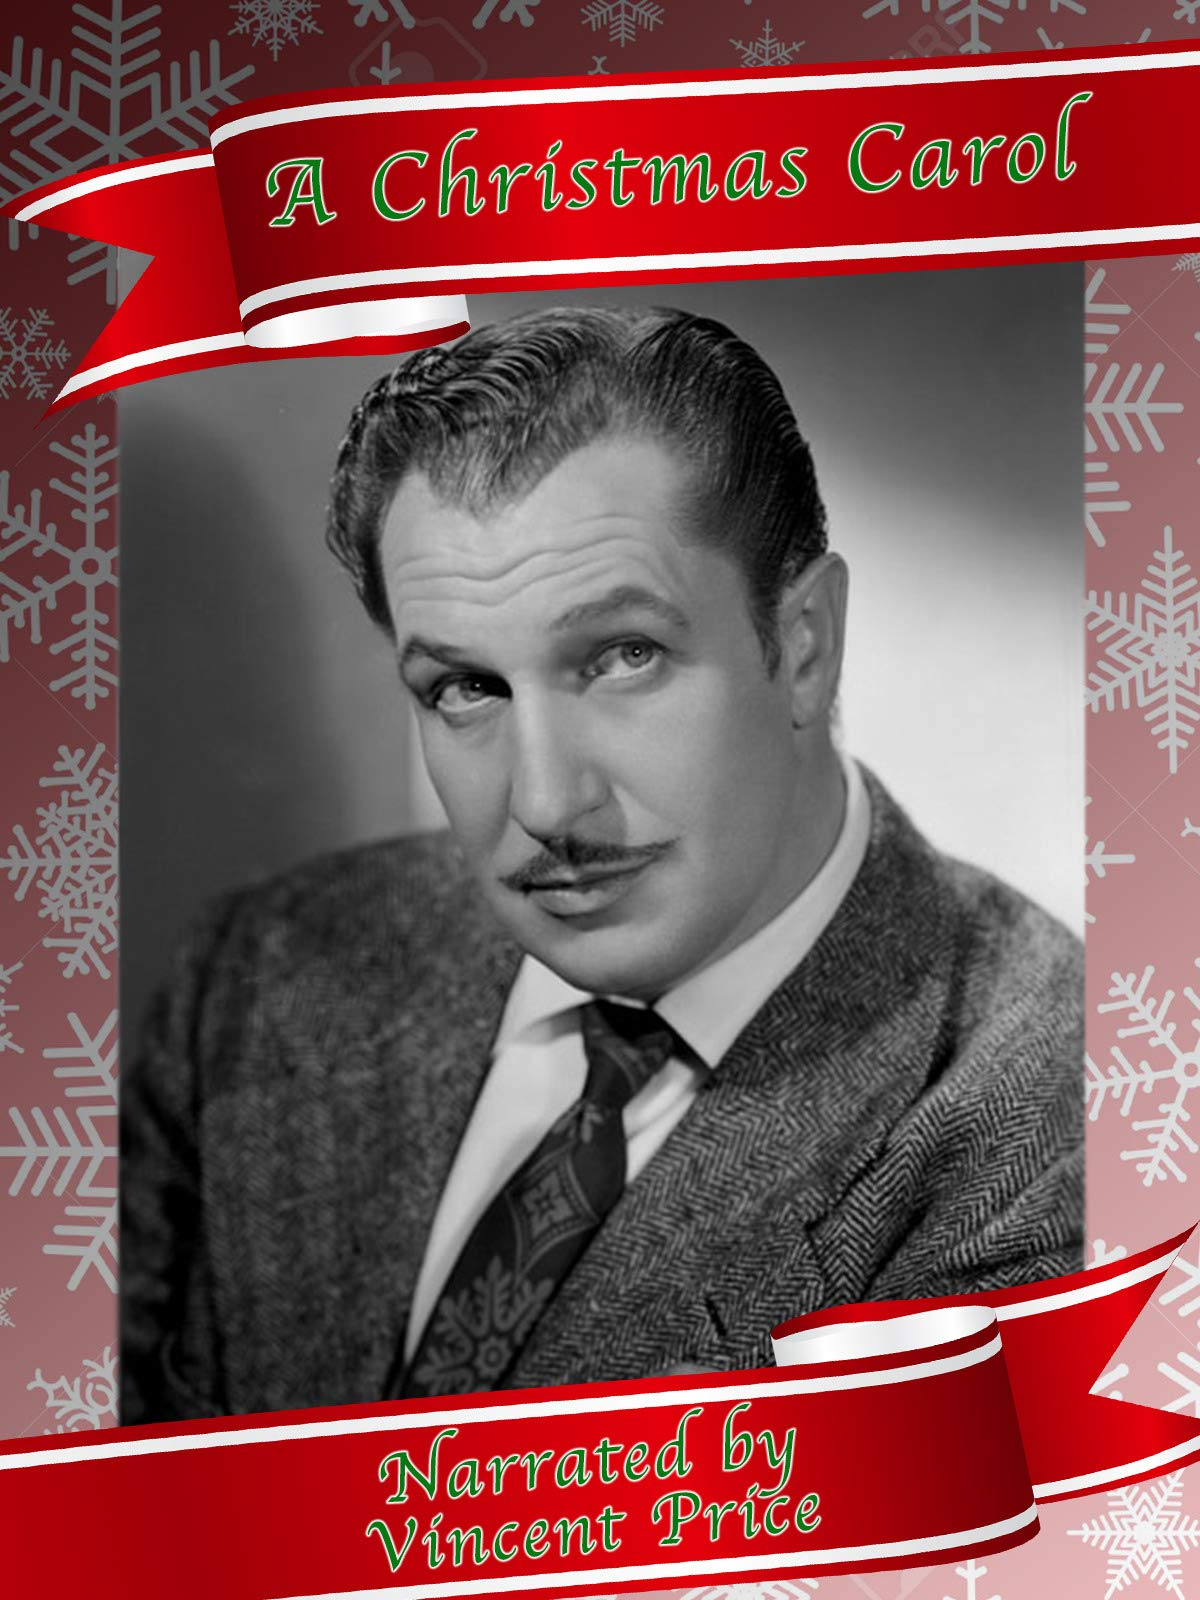 A Christmas Carol (Vincent Price)